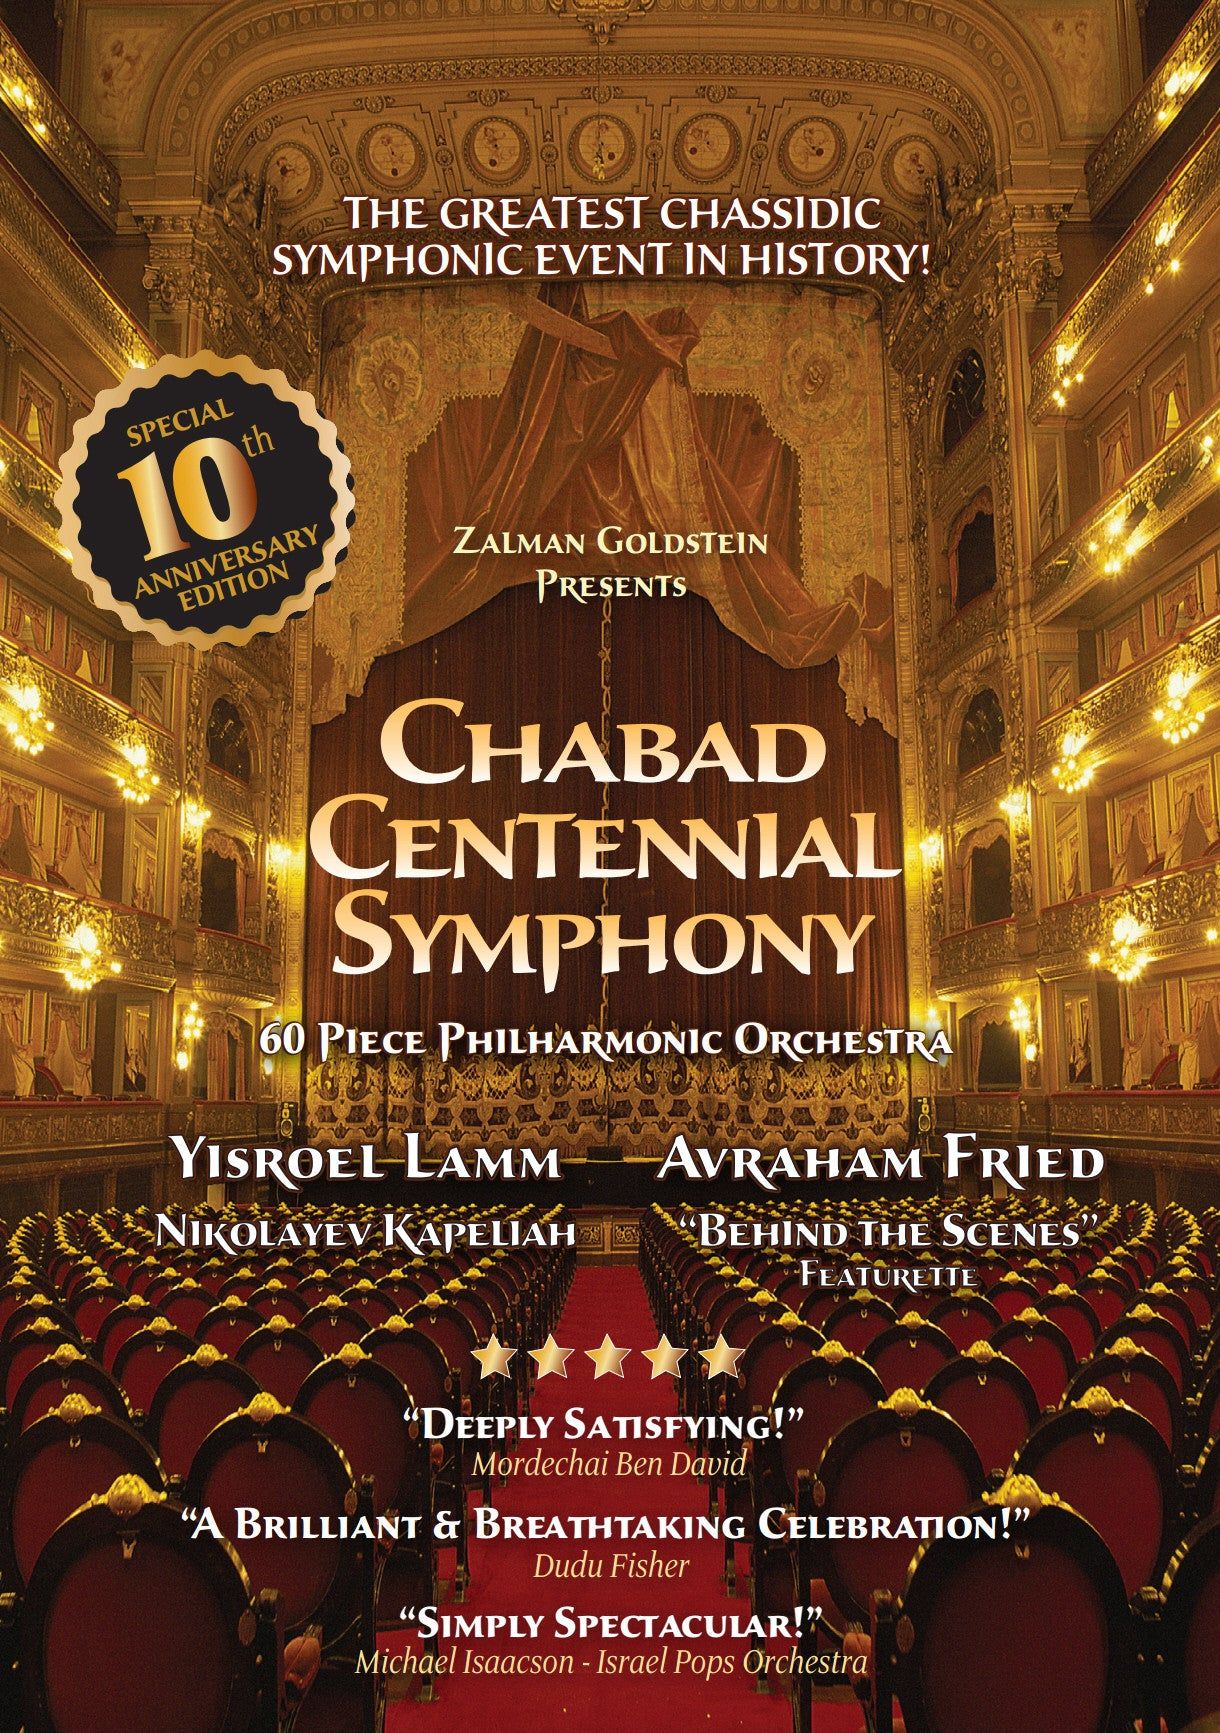 Zalman Goldstein - Chabad Centennial Celebration - DVD